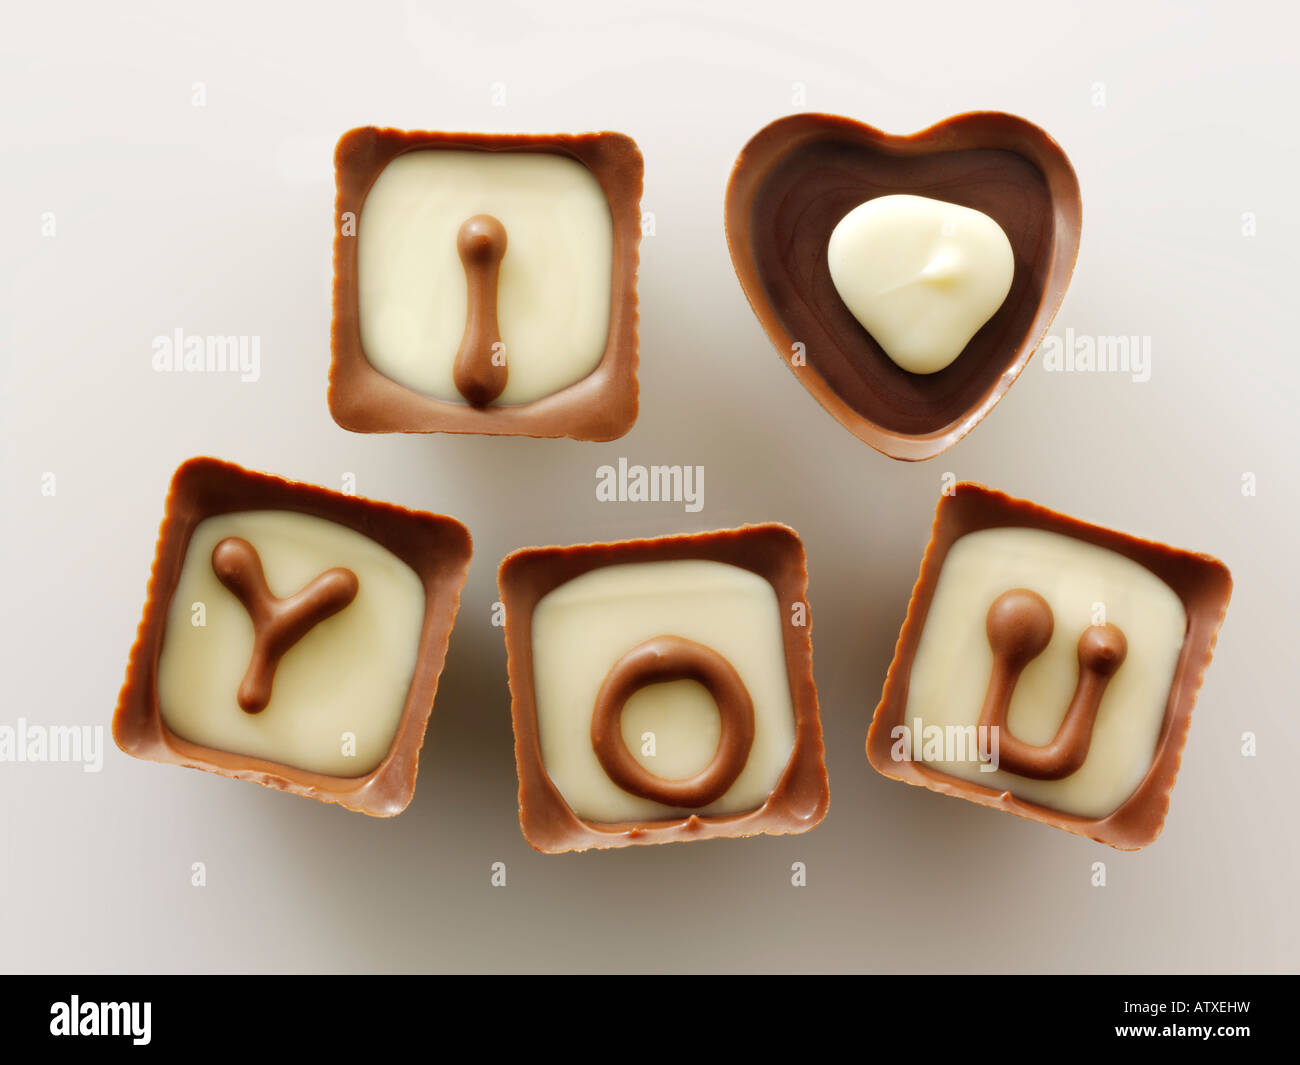 I Love You message for Valentines mothers day or for birthdays - Chocolates - Stock Image